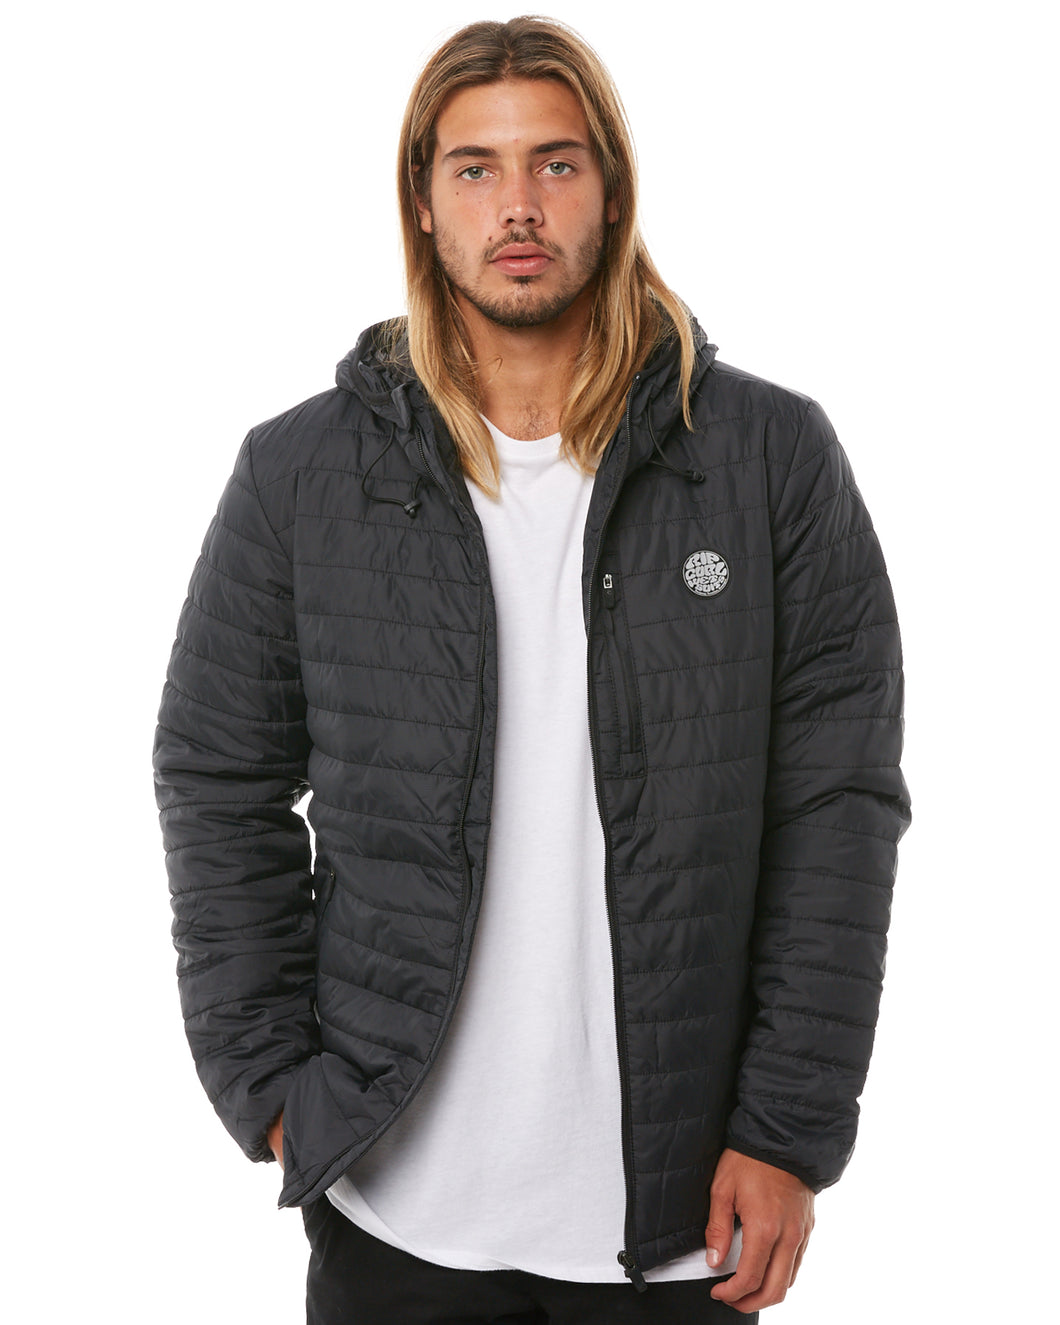 Rip Curl Men's Melting Anti Series Jacket - Black